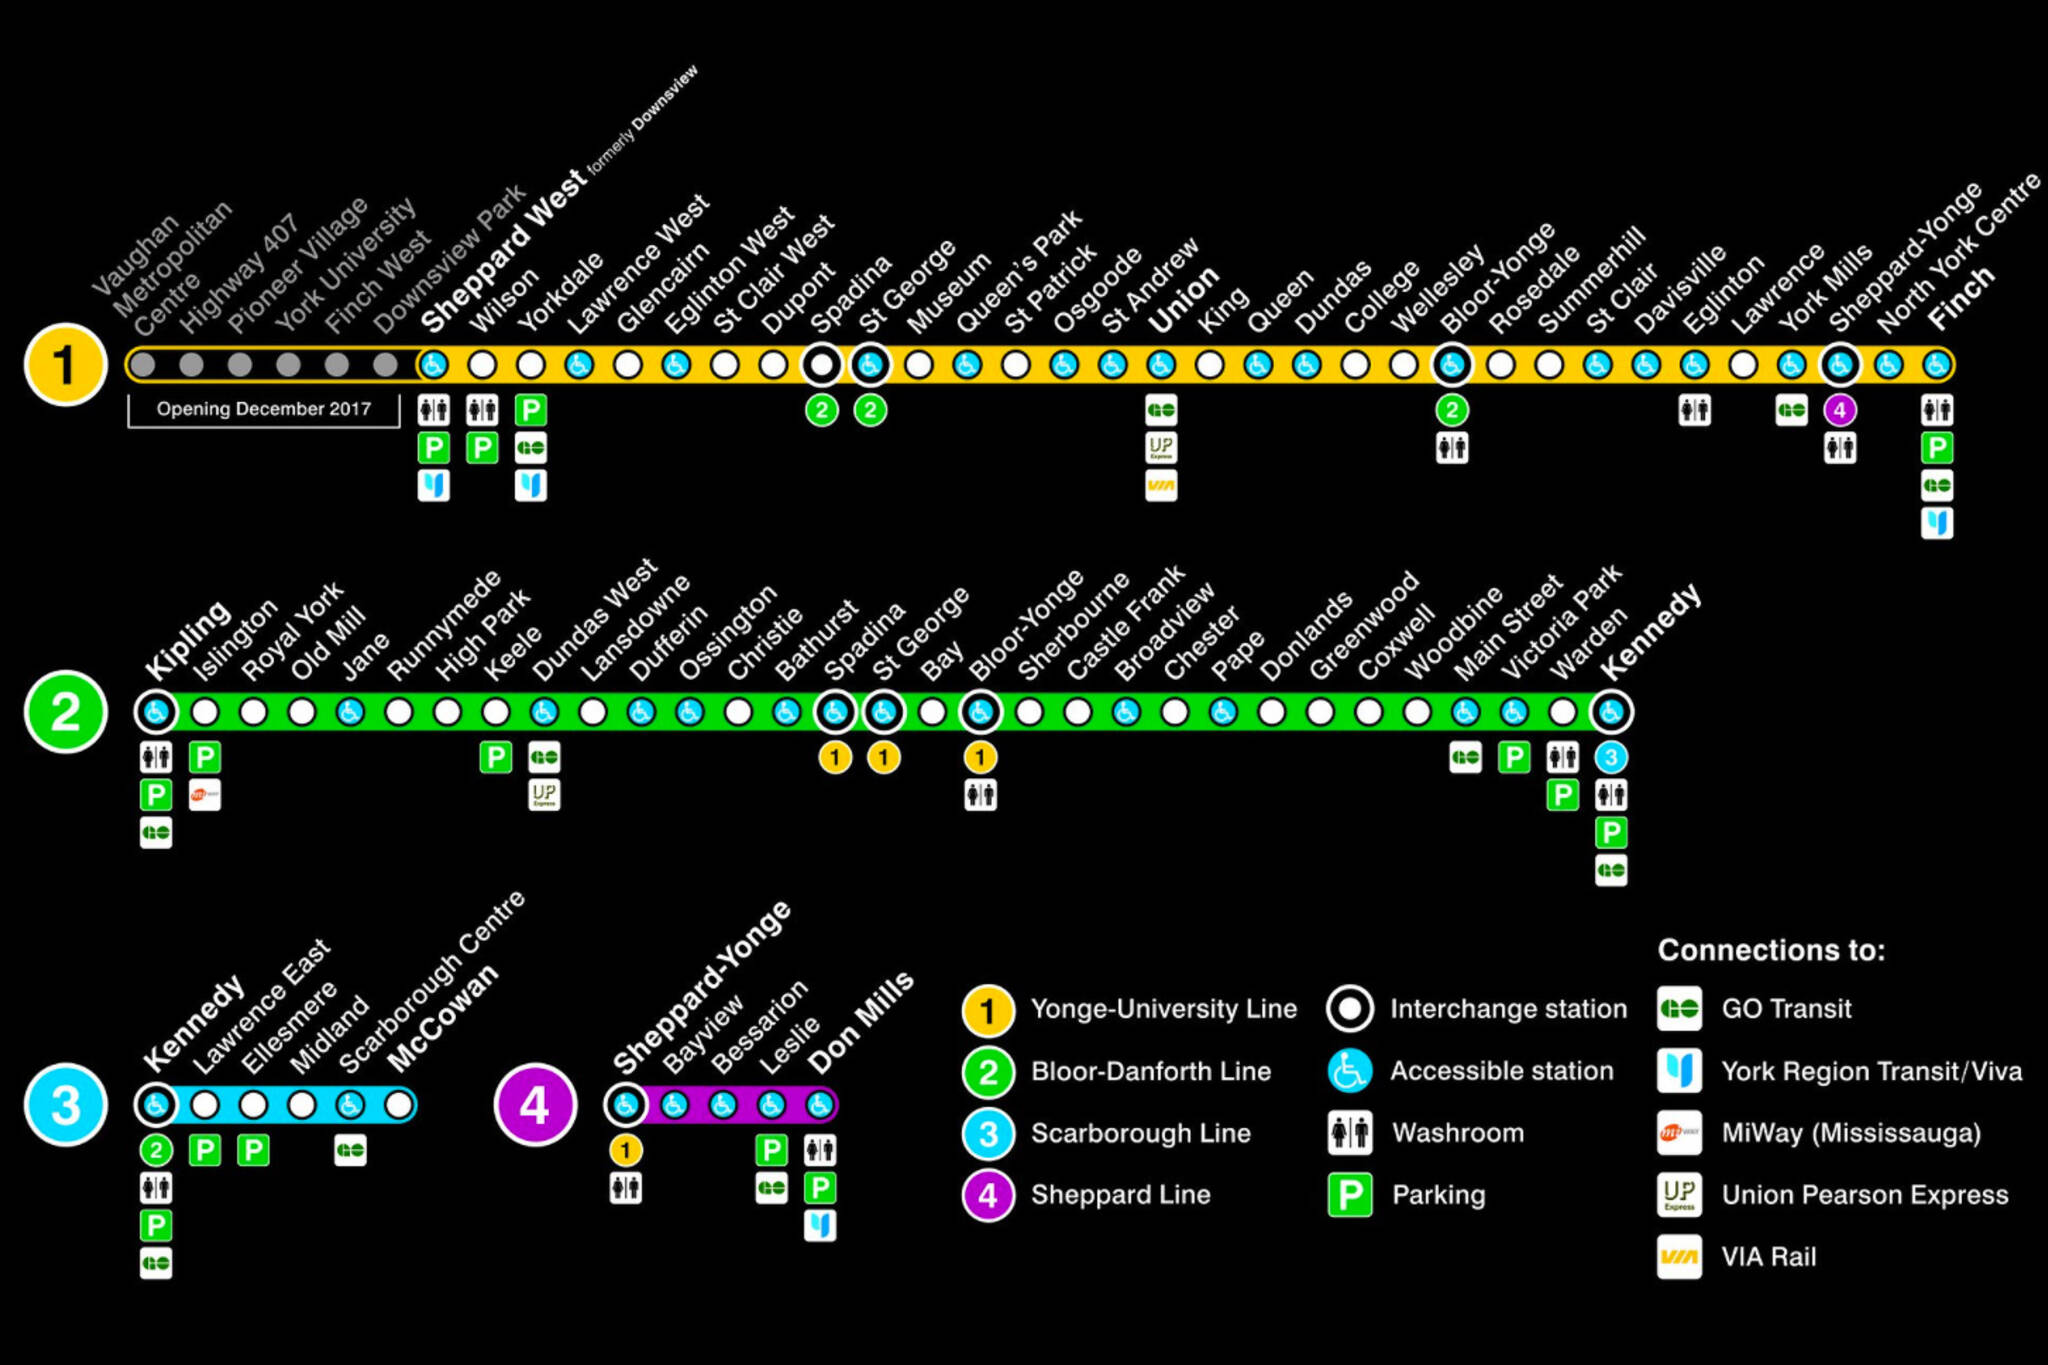 Ttc Subway Map 2018.The Ttc Just Redesigned The Subway Map